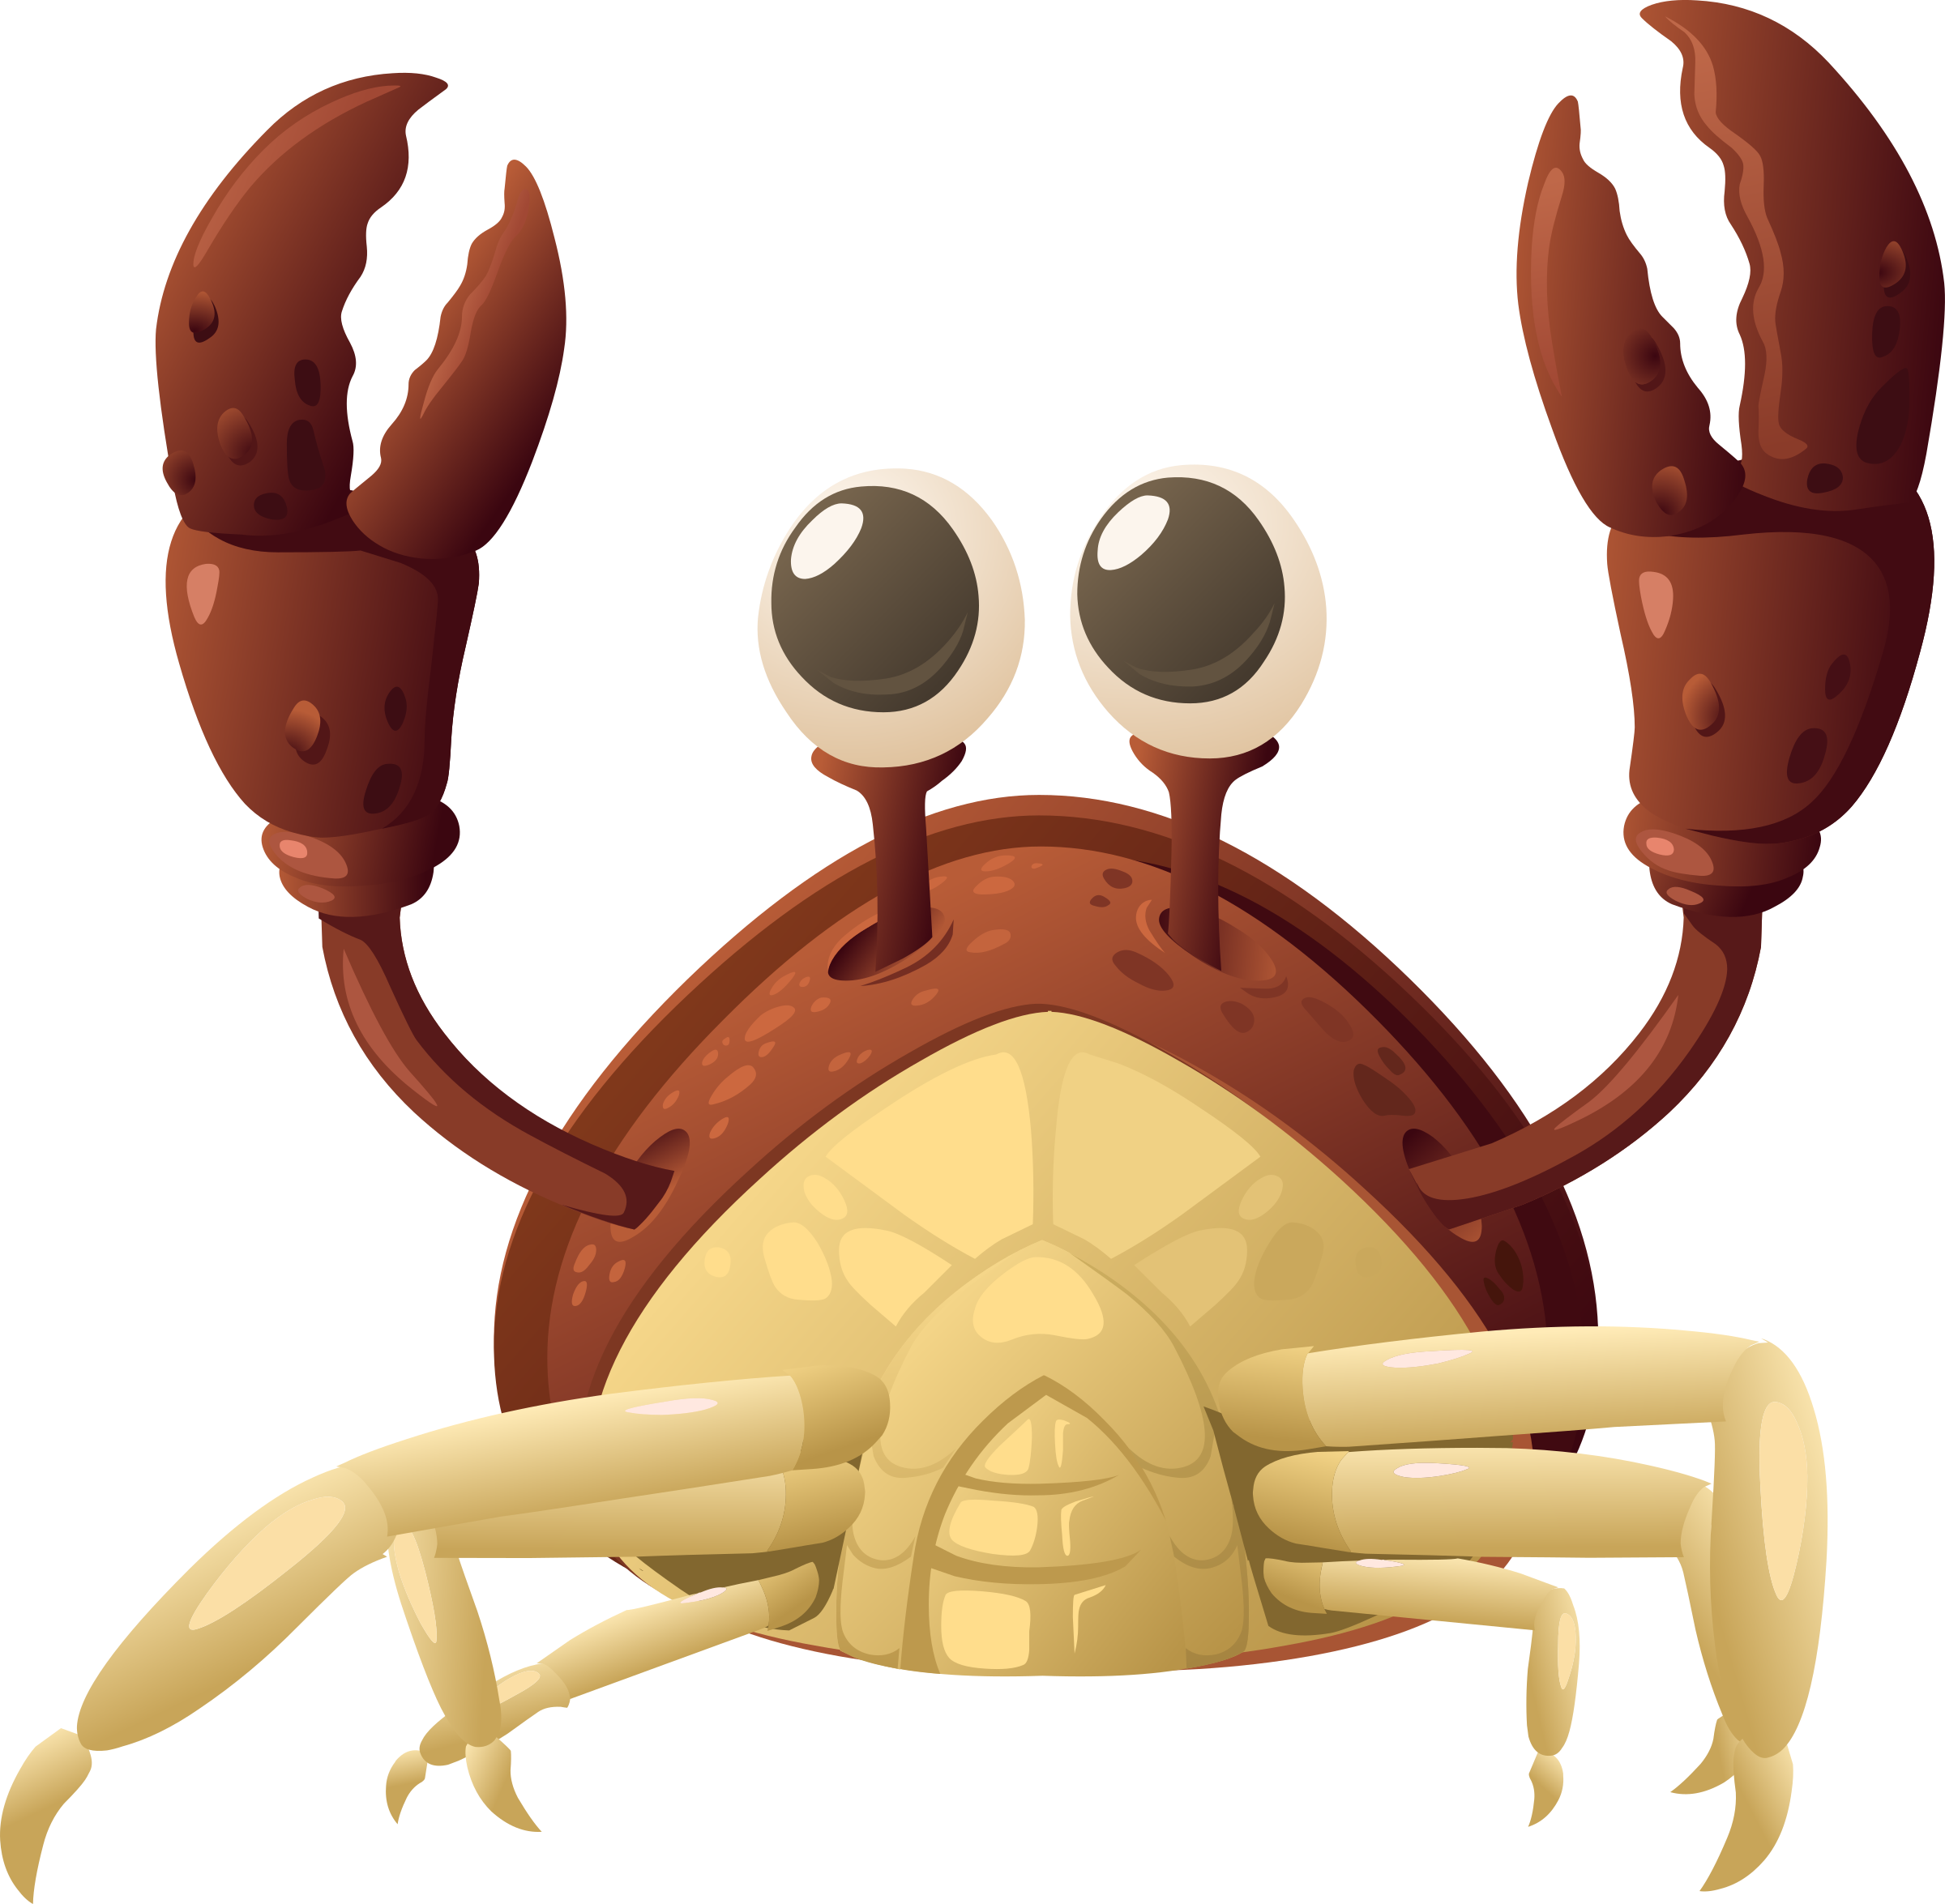 Crabs clipart crab claw. Inhabitants npc by glitch